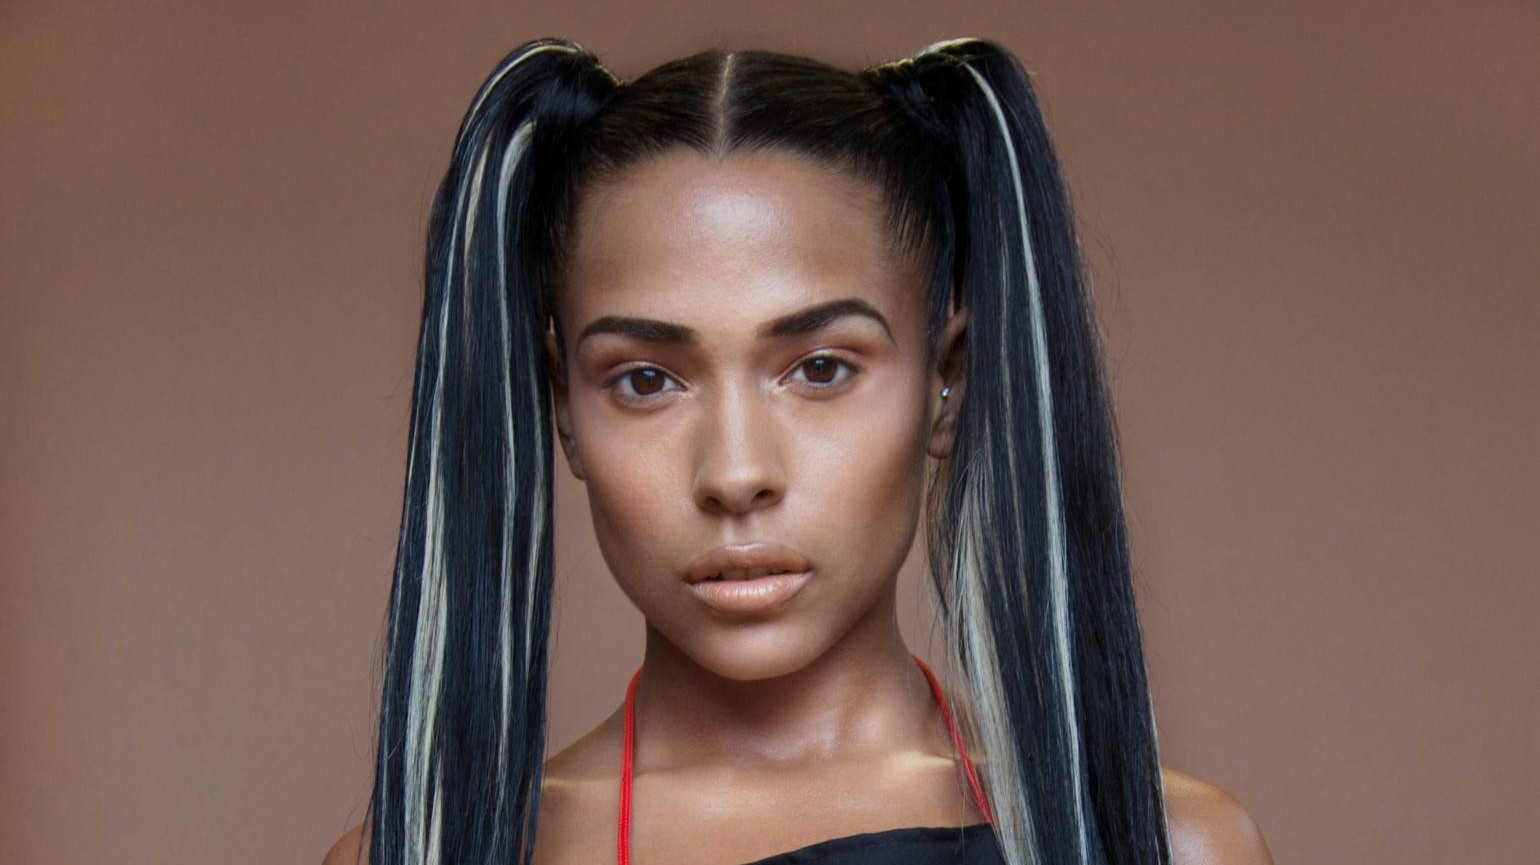 princess nokia just signed to one of london's oldest independent labels